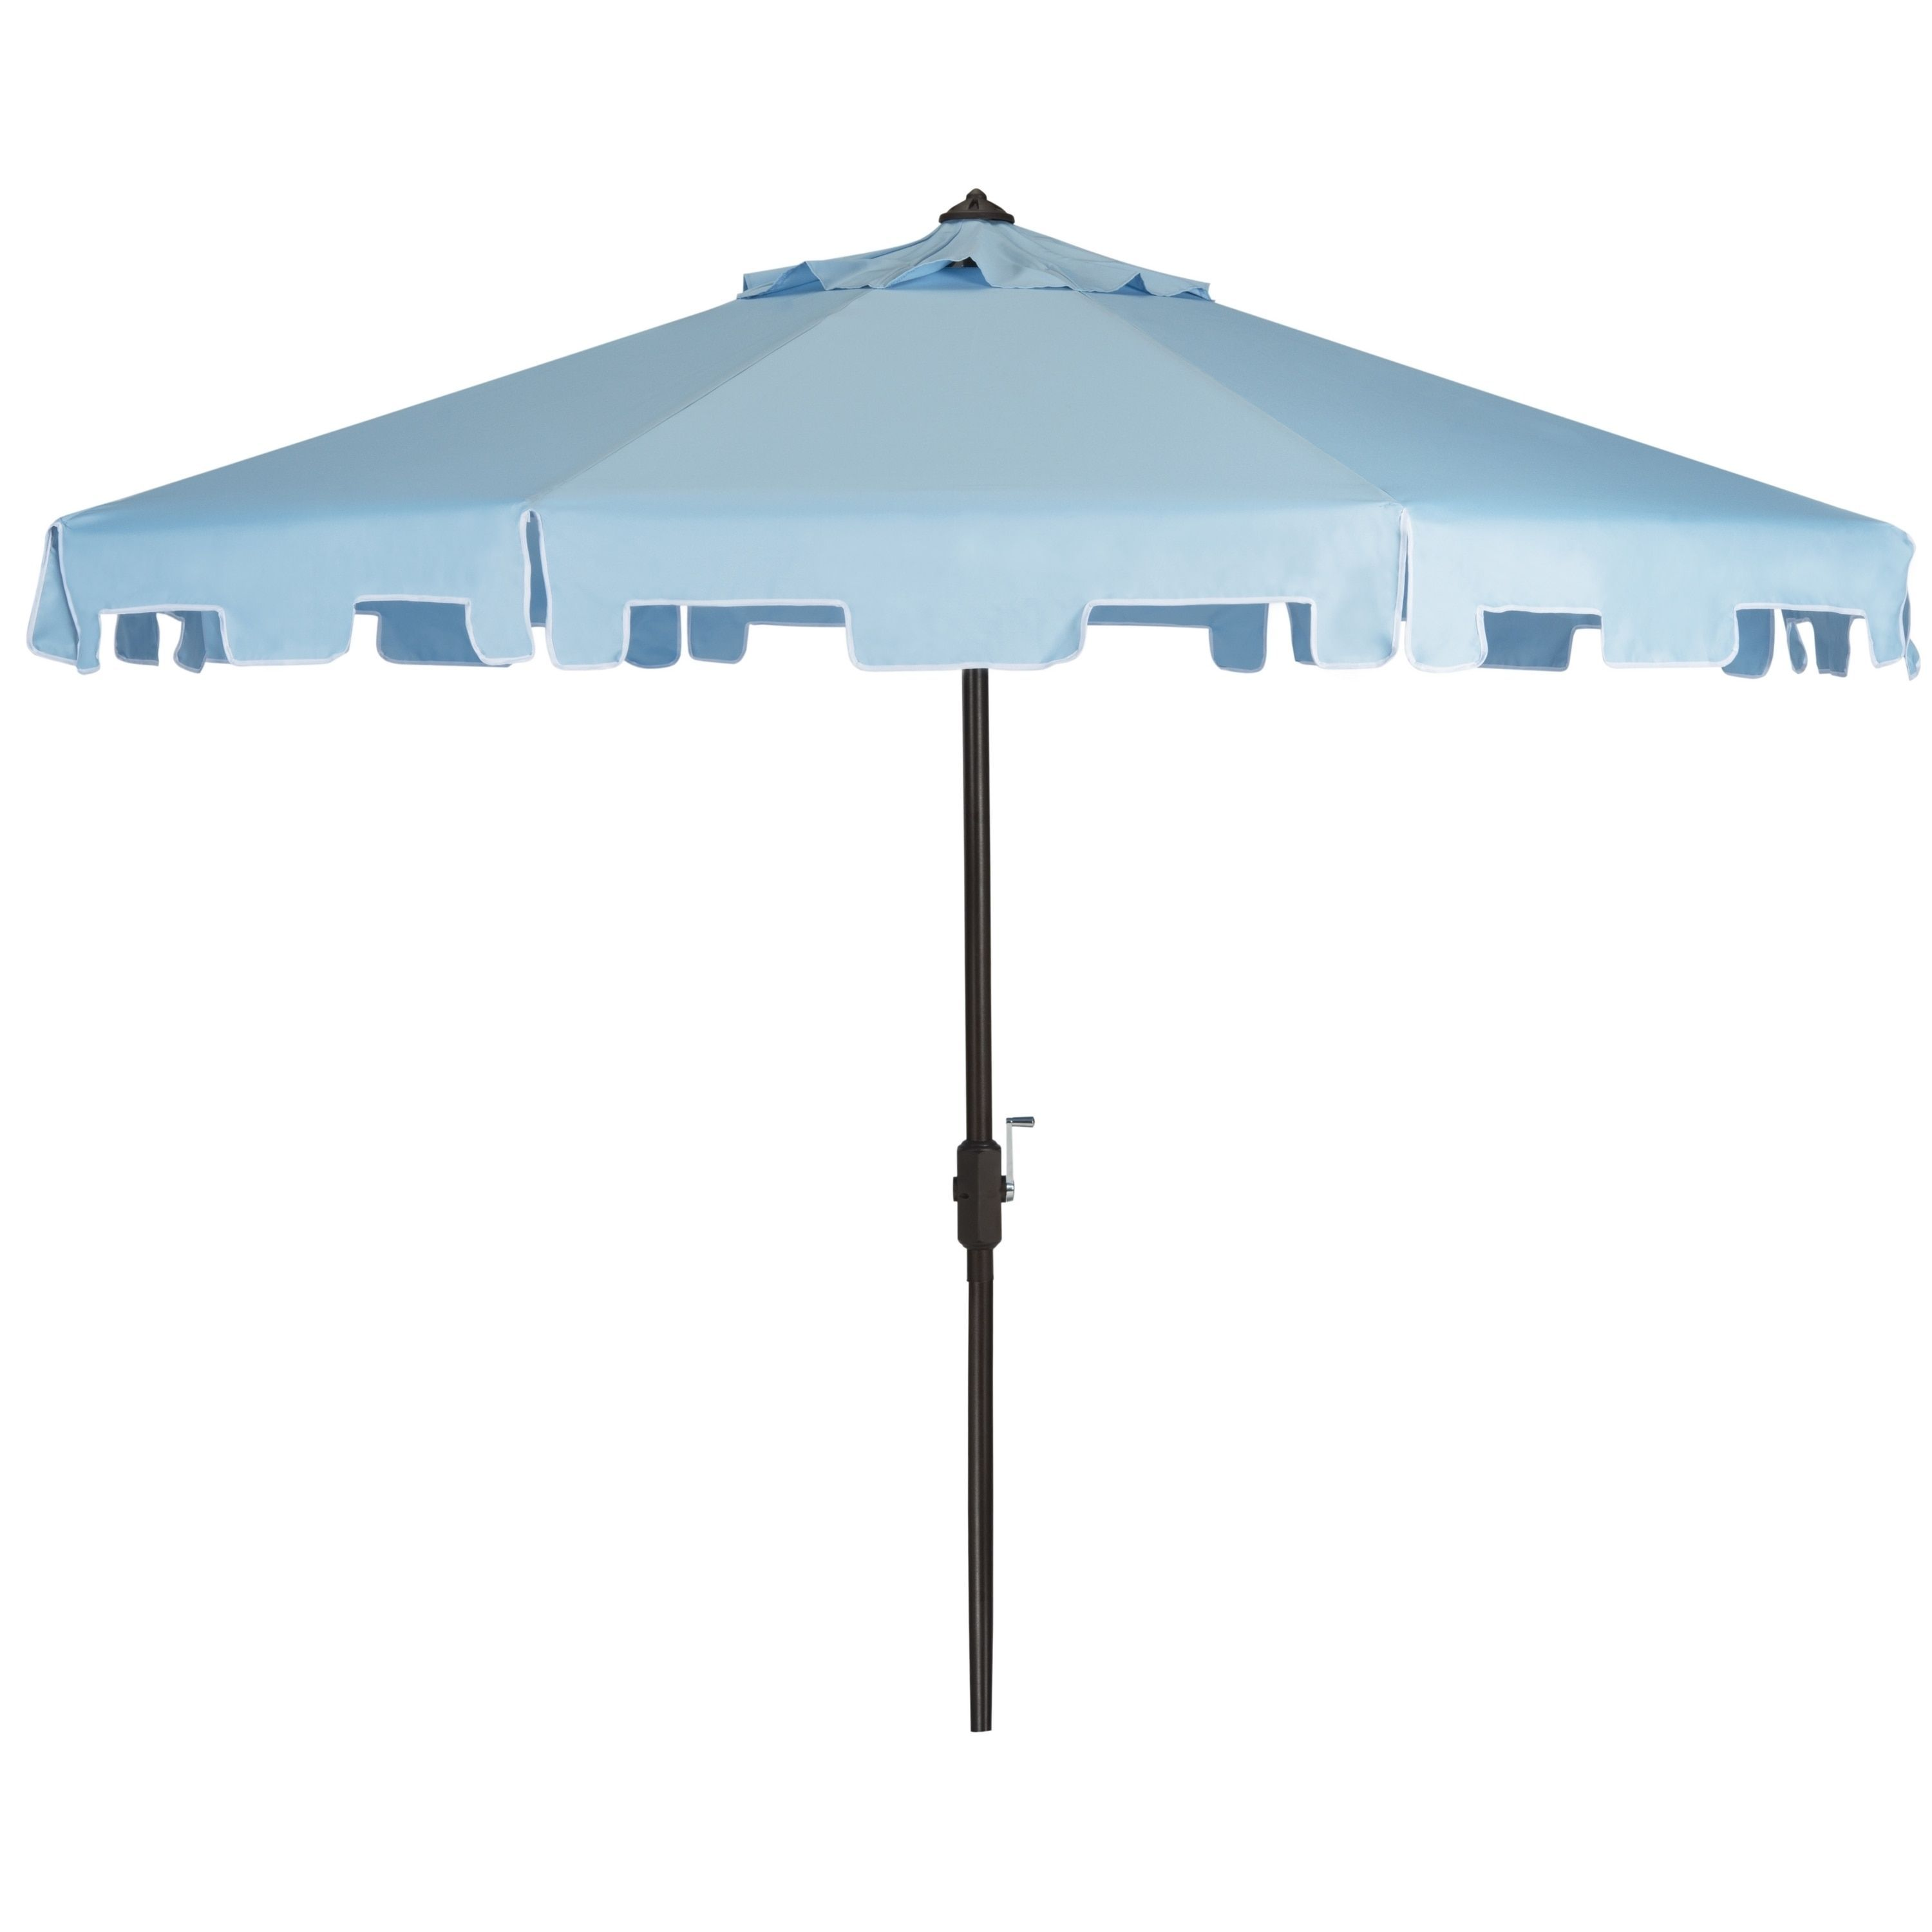 Safavieh Zimmerman Blue Aluminum Tilt and Crank 9-foot Crank Market Patio Umbrella With Flap (PAT8000D)  sc 1 st  Pinterest & Safavieh Zimmerman Blue Aluminum Tilt and Crank 9-foot Crank Market ...